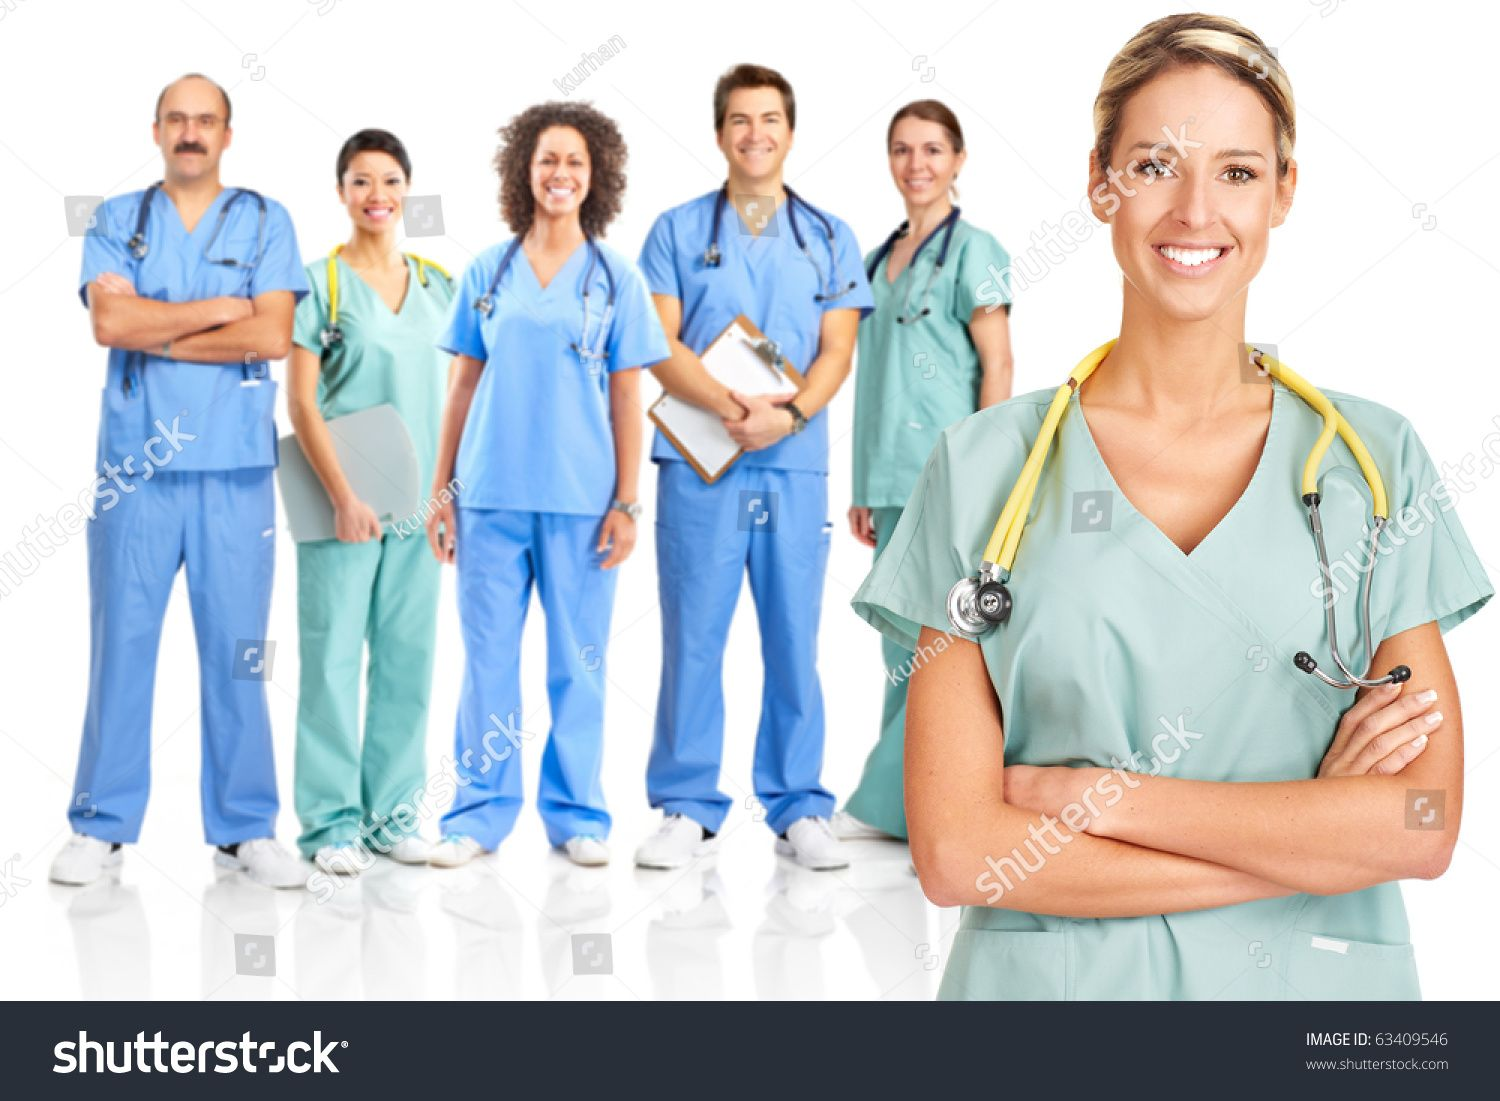 Smiling medical doctors with stethoscopes. Isolated over